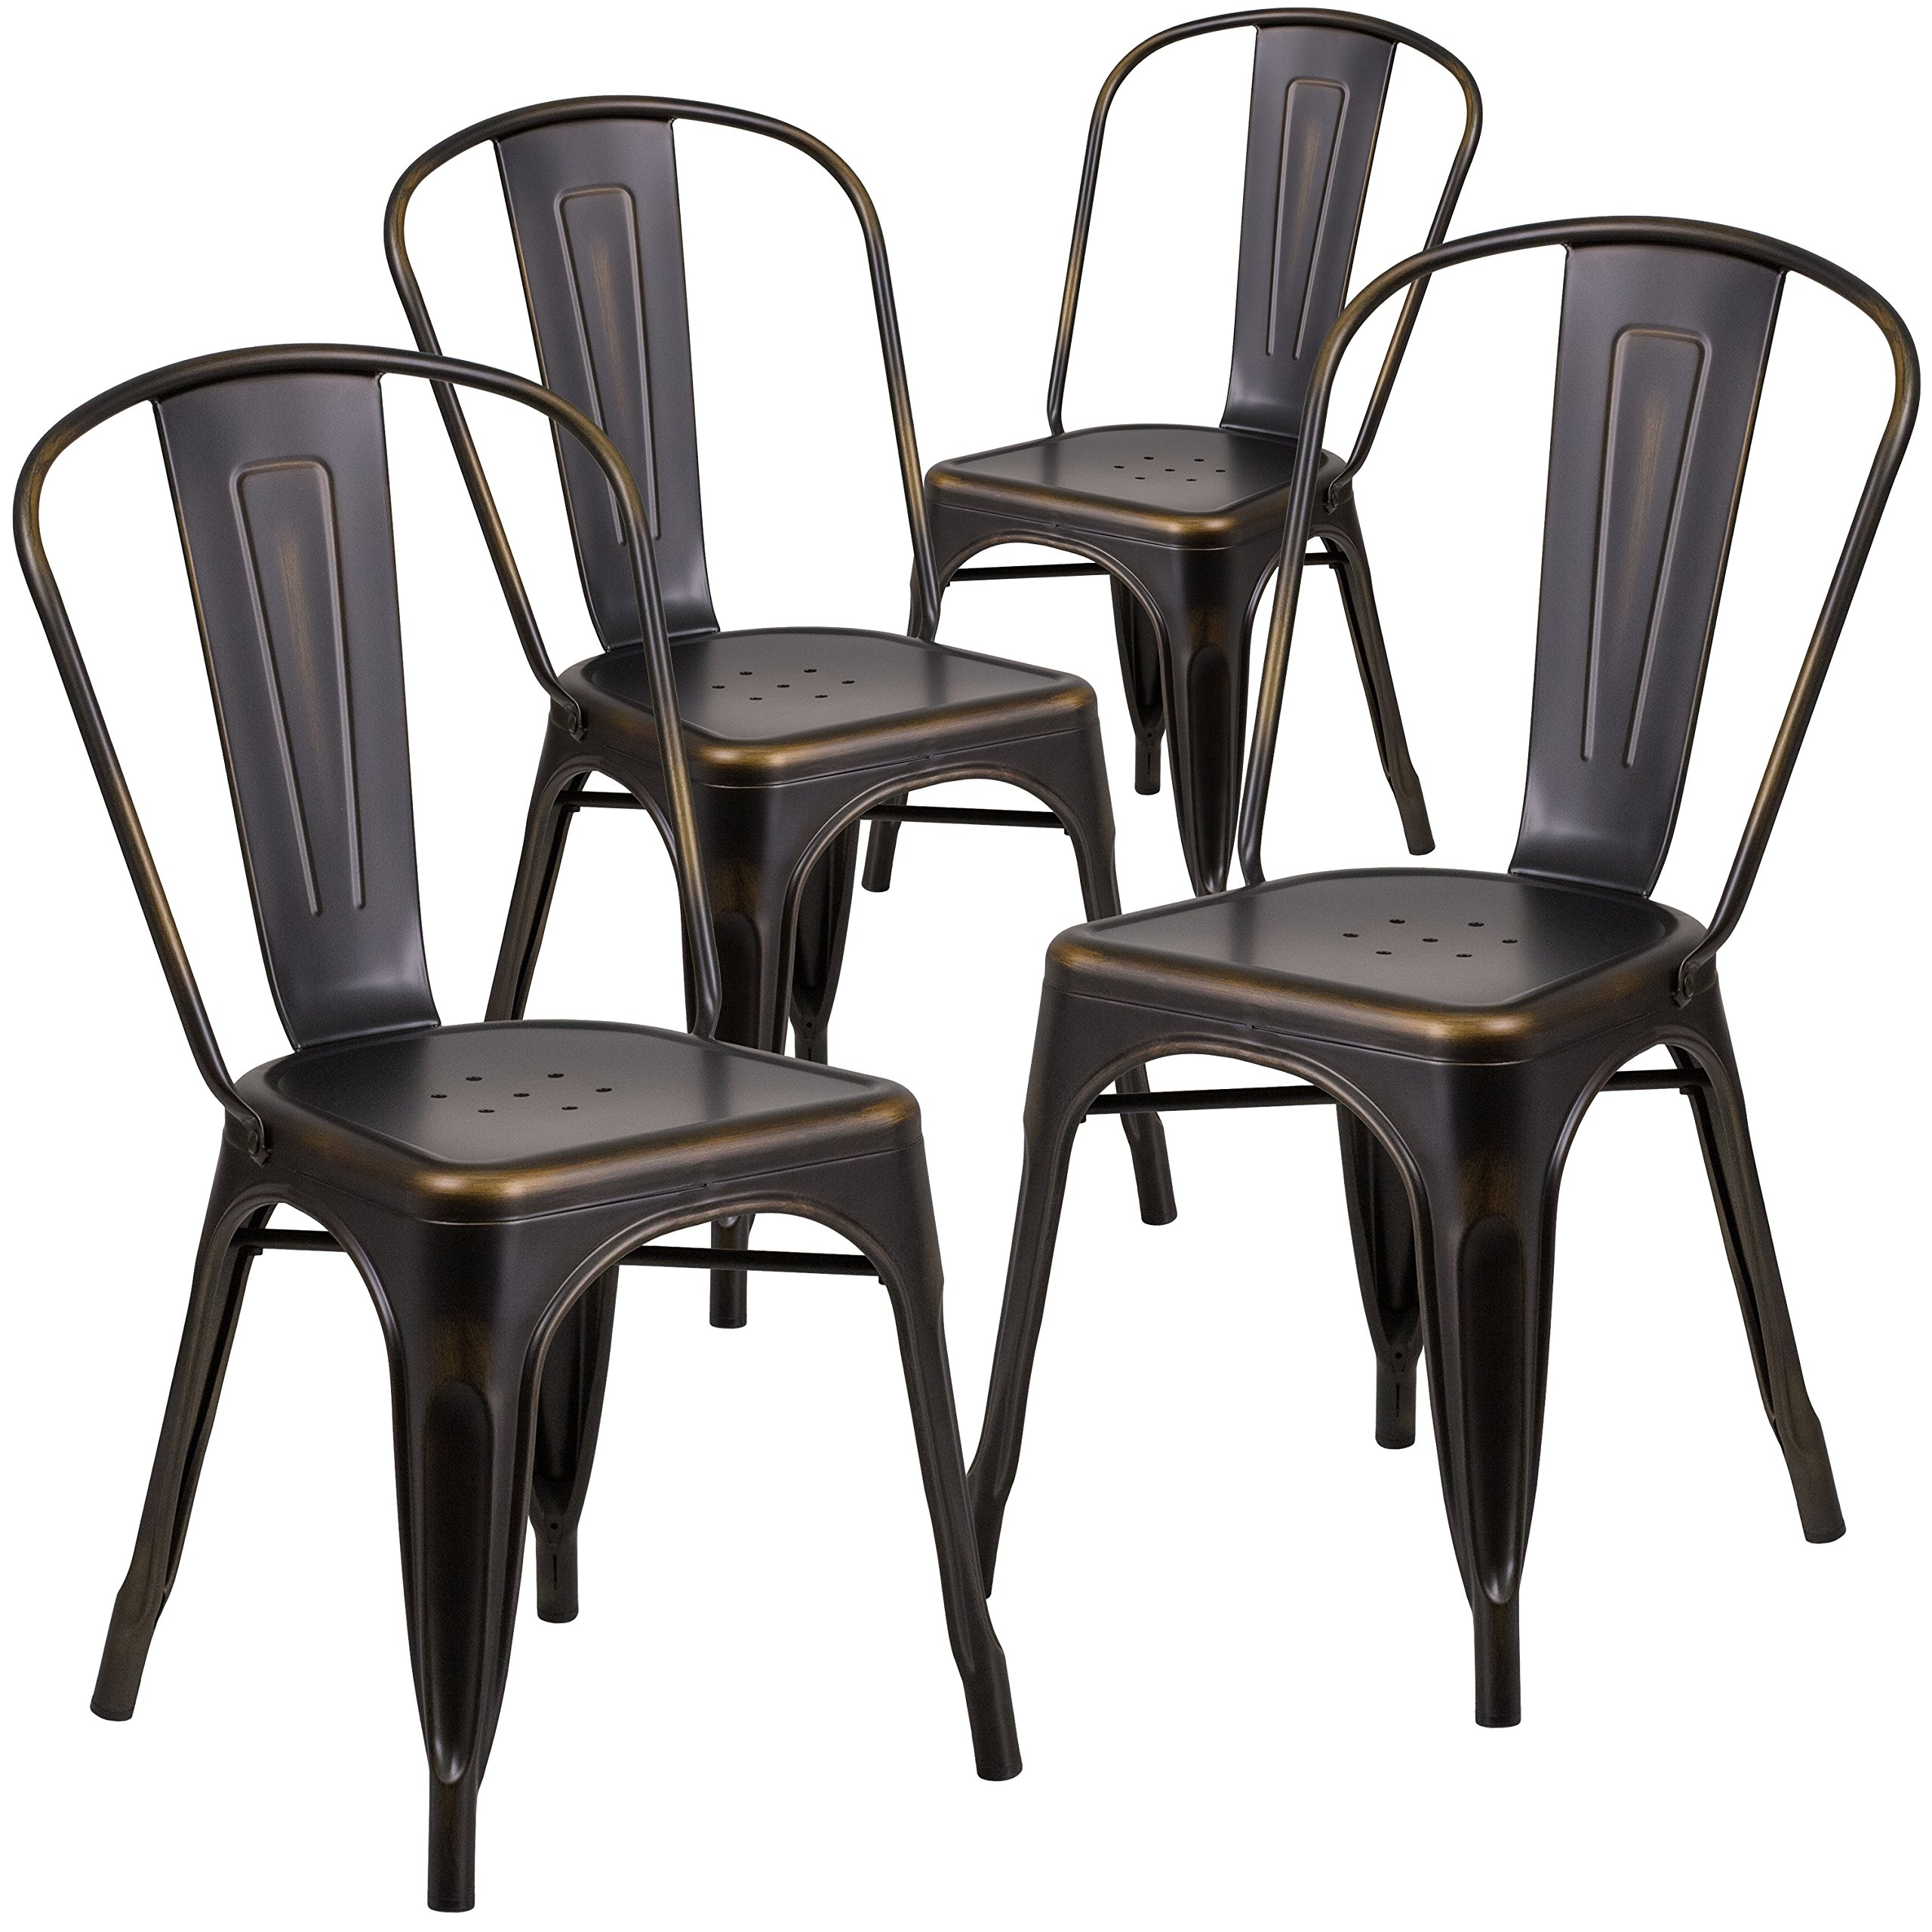 Flash Furniture 4 Pk. Distressed Copper Metal Indoor-Outdoor Stackable Chair